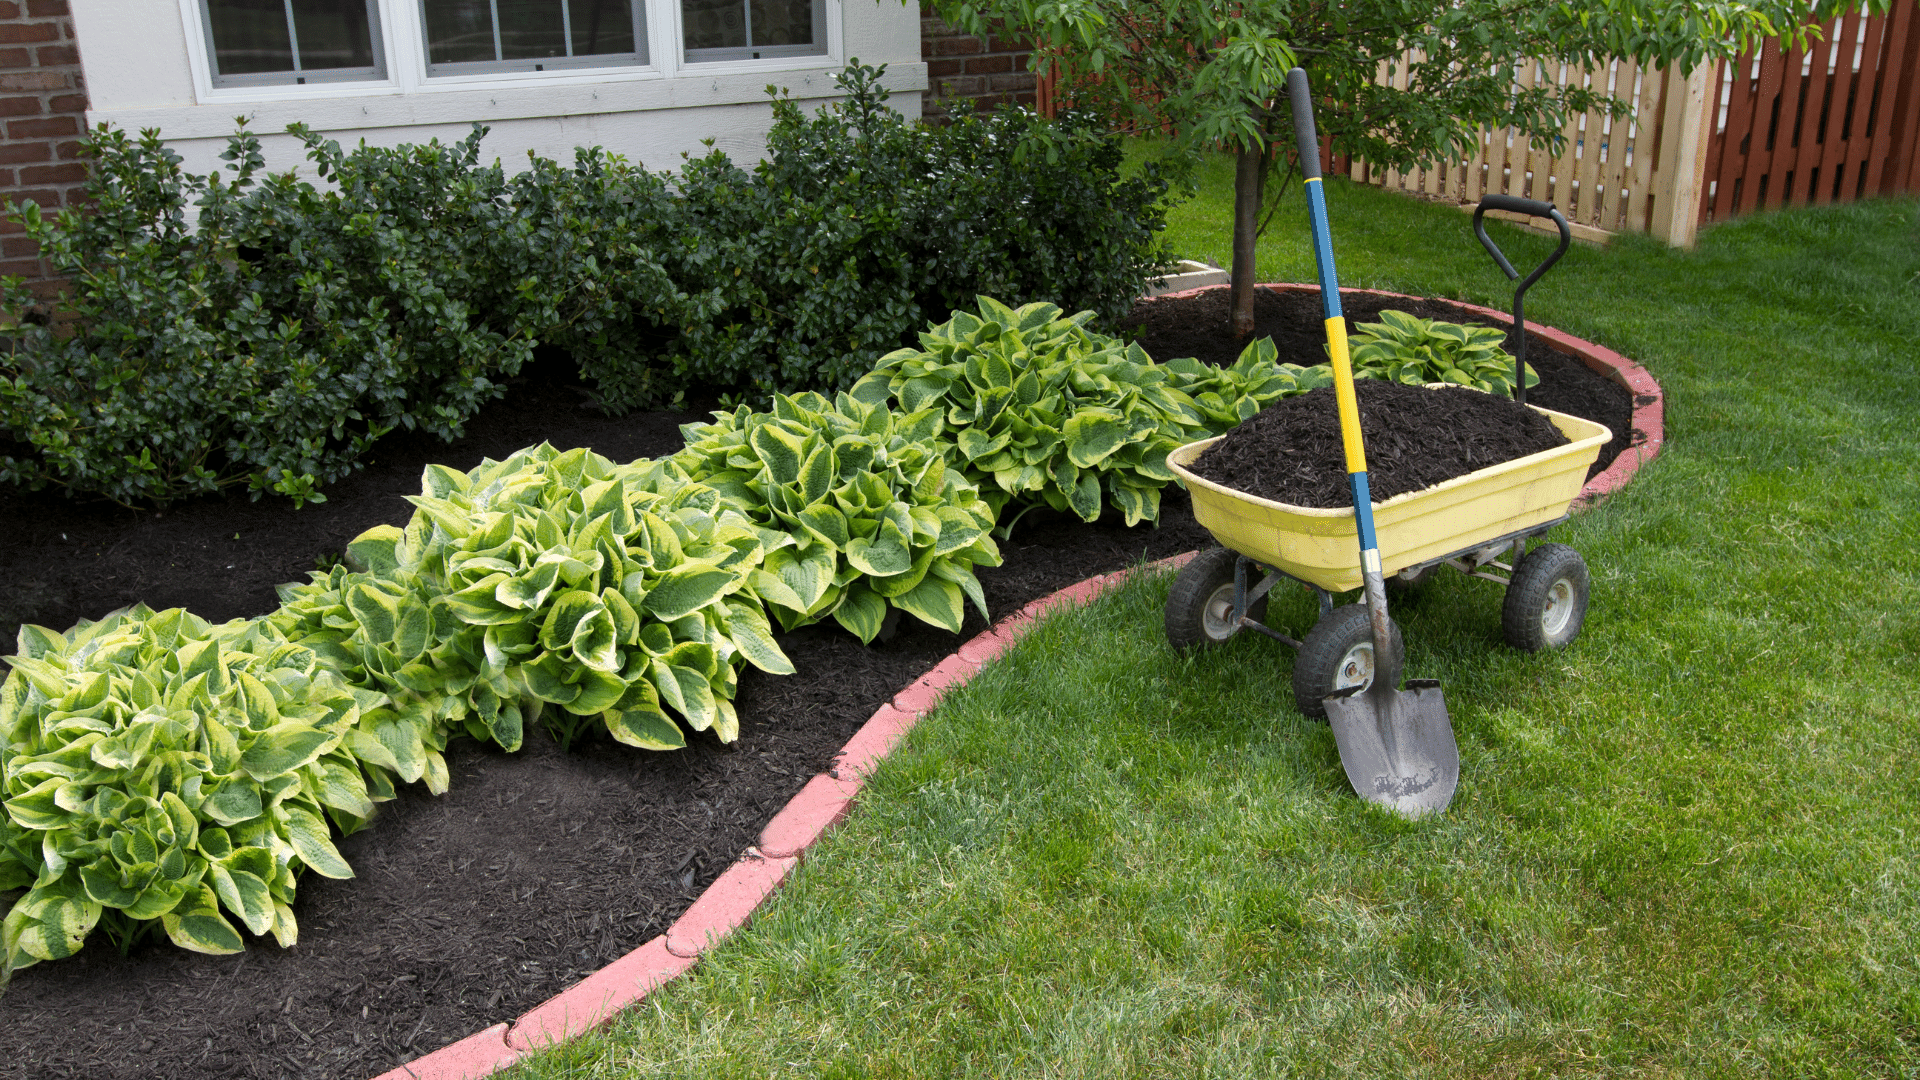 Adding wood chips to flower bed.